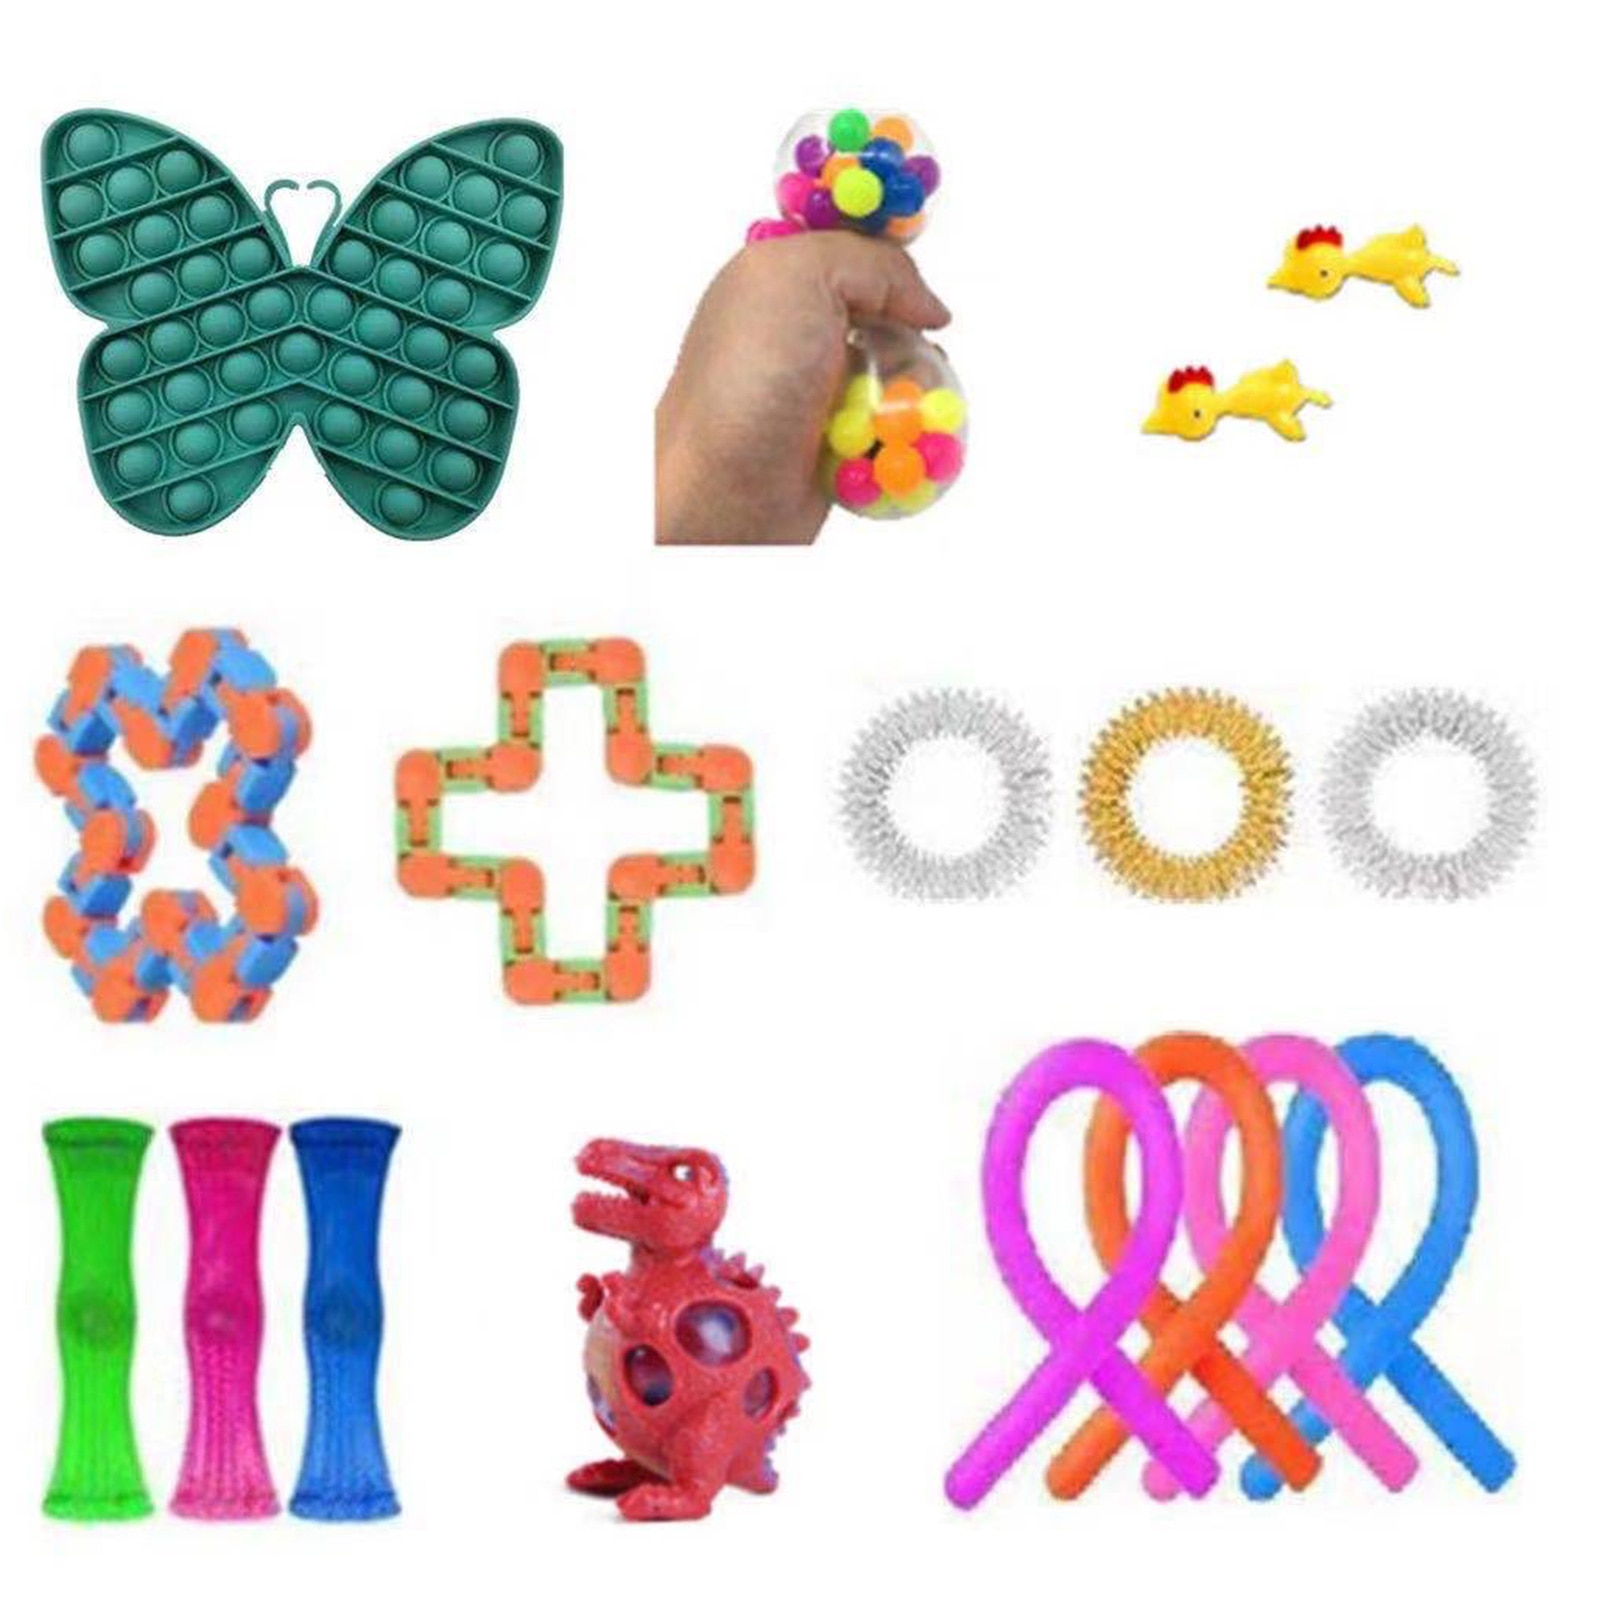 1Set Of Fidget Toys Stress Relief Toys Autism Anxiety Relief Stress Pop Bubble Sensory Decompression Toy For Kids Adults Gift enlarge